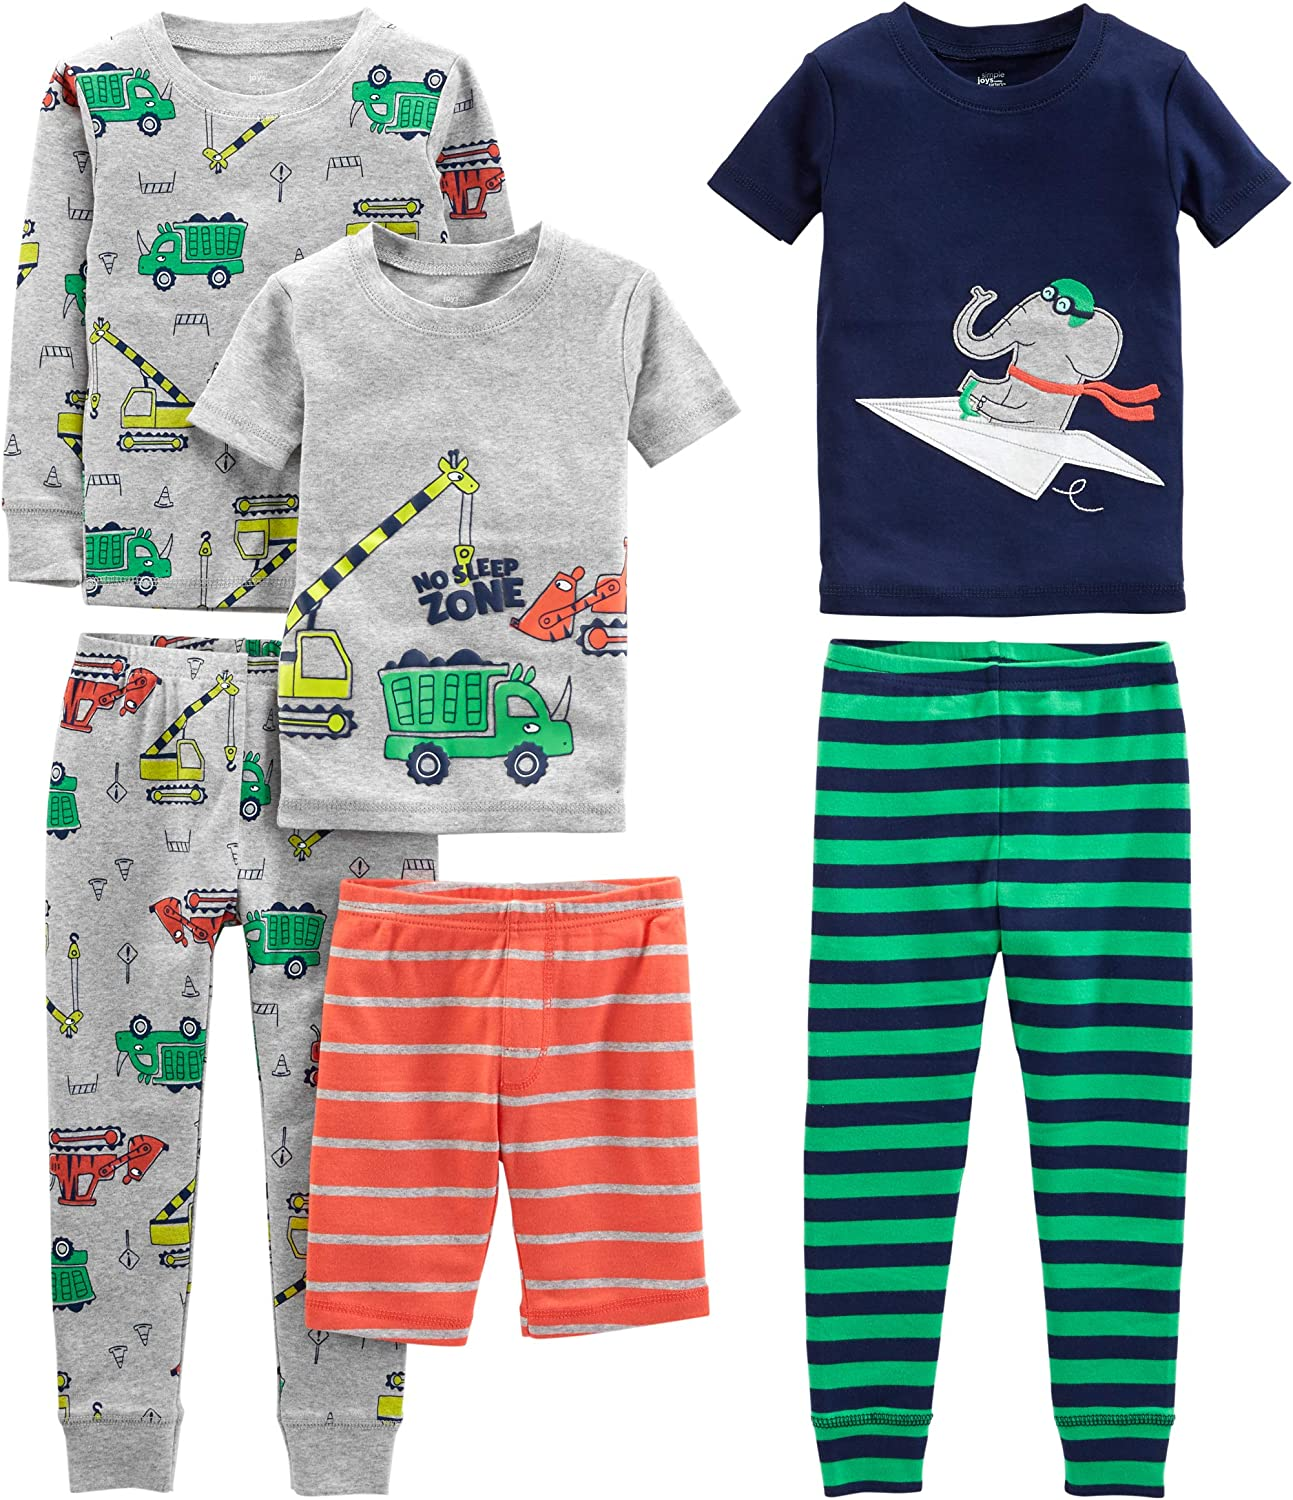 Little Kid Simple Joys by Carters Baby and Toddler Boys 6-Piece Snug Fit Cotton Pajama Set